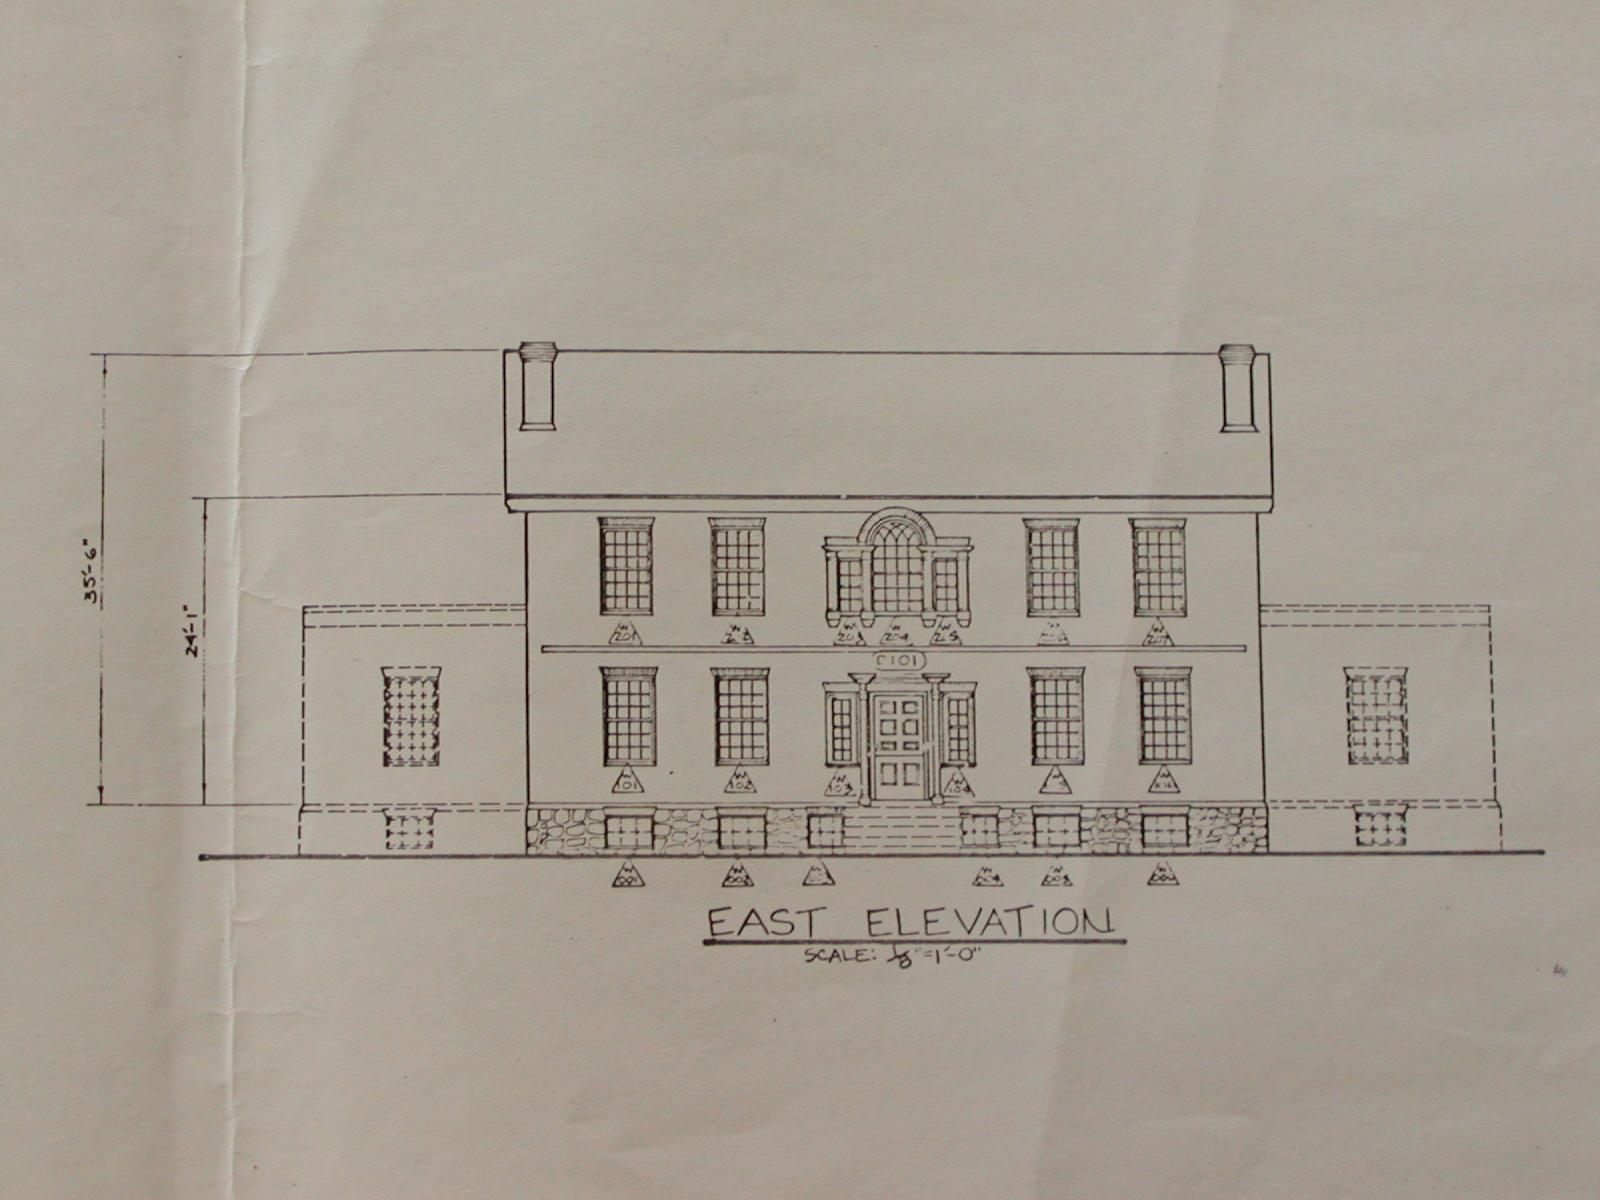 East Elevation of Lindenwald